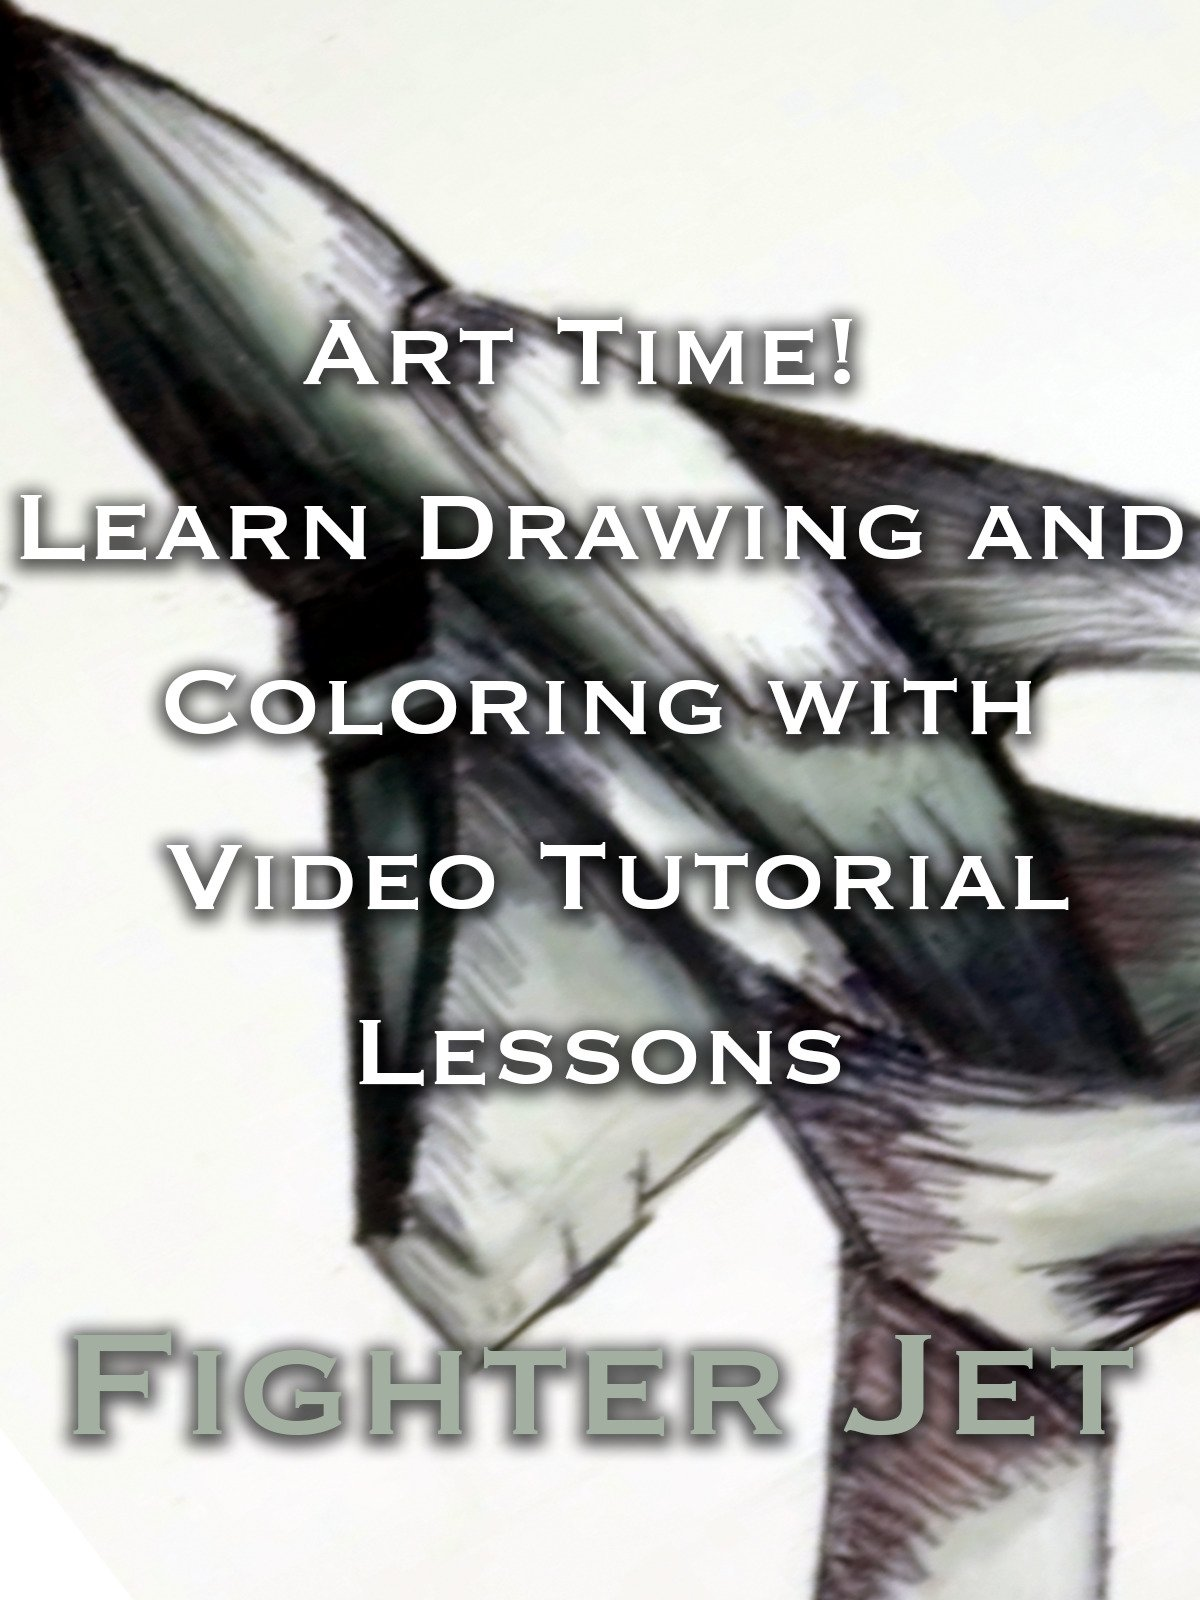 Art Time! Learn Drawing and Coloring with Video Tutorial Lessons Fighter Jet